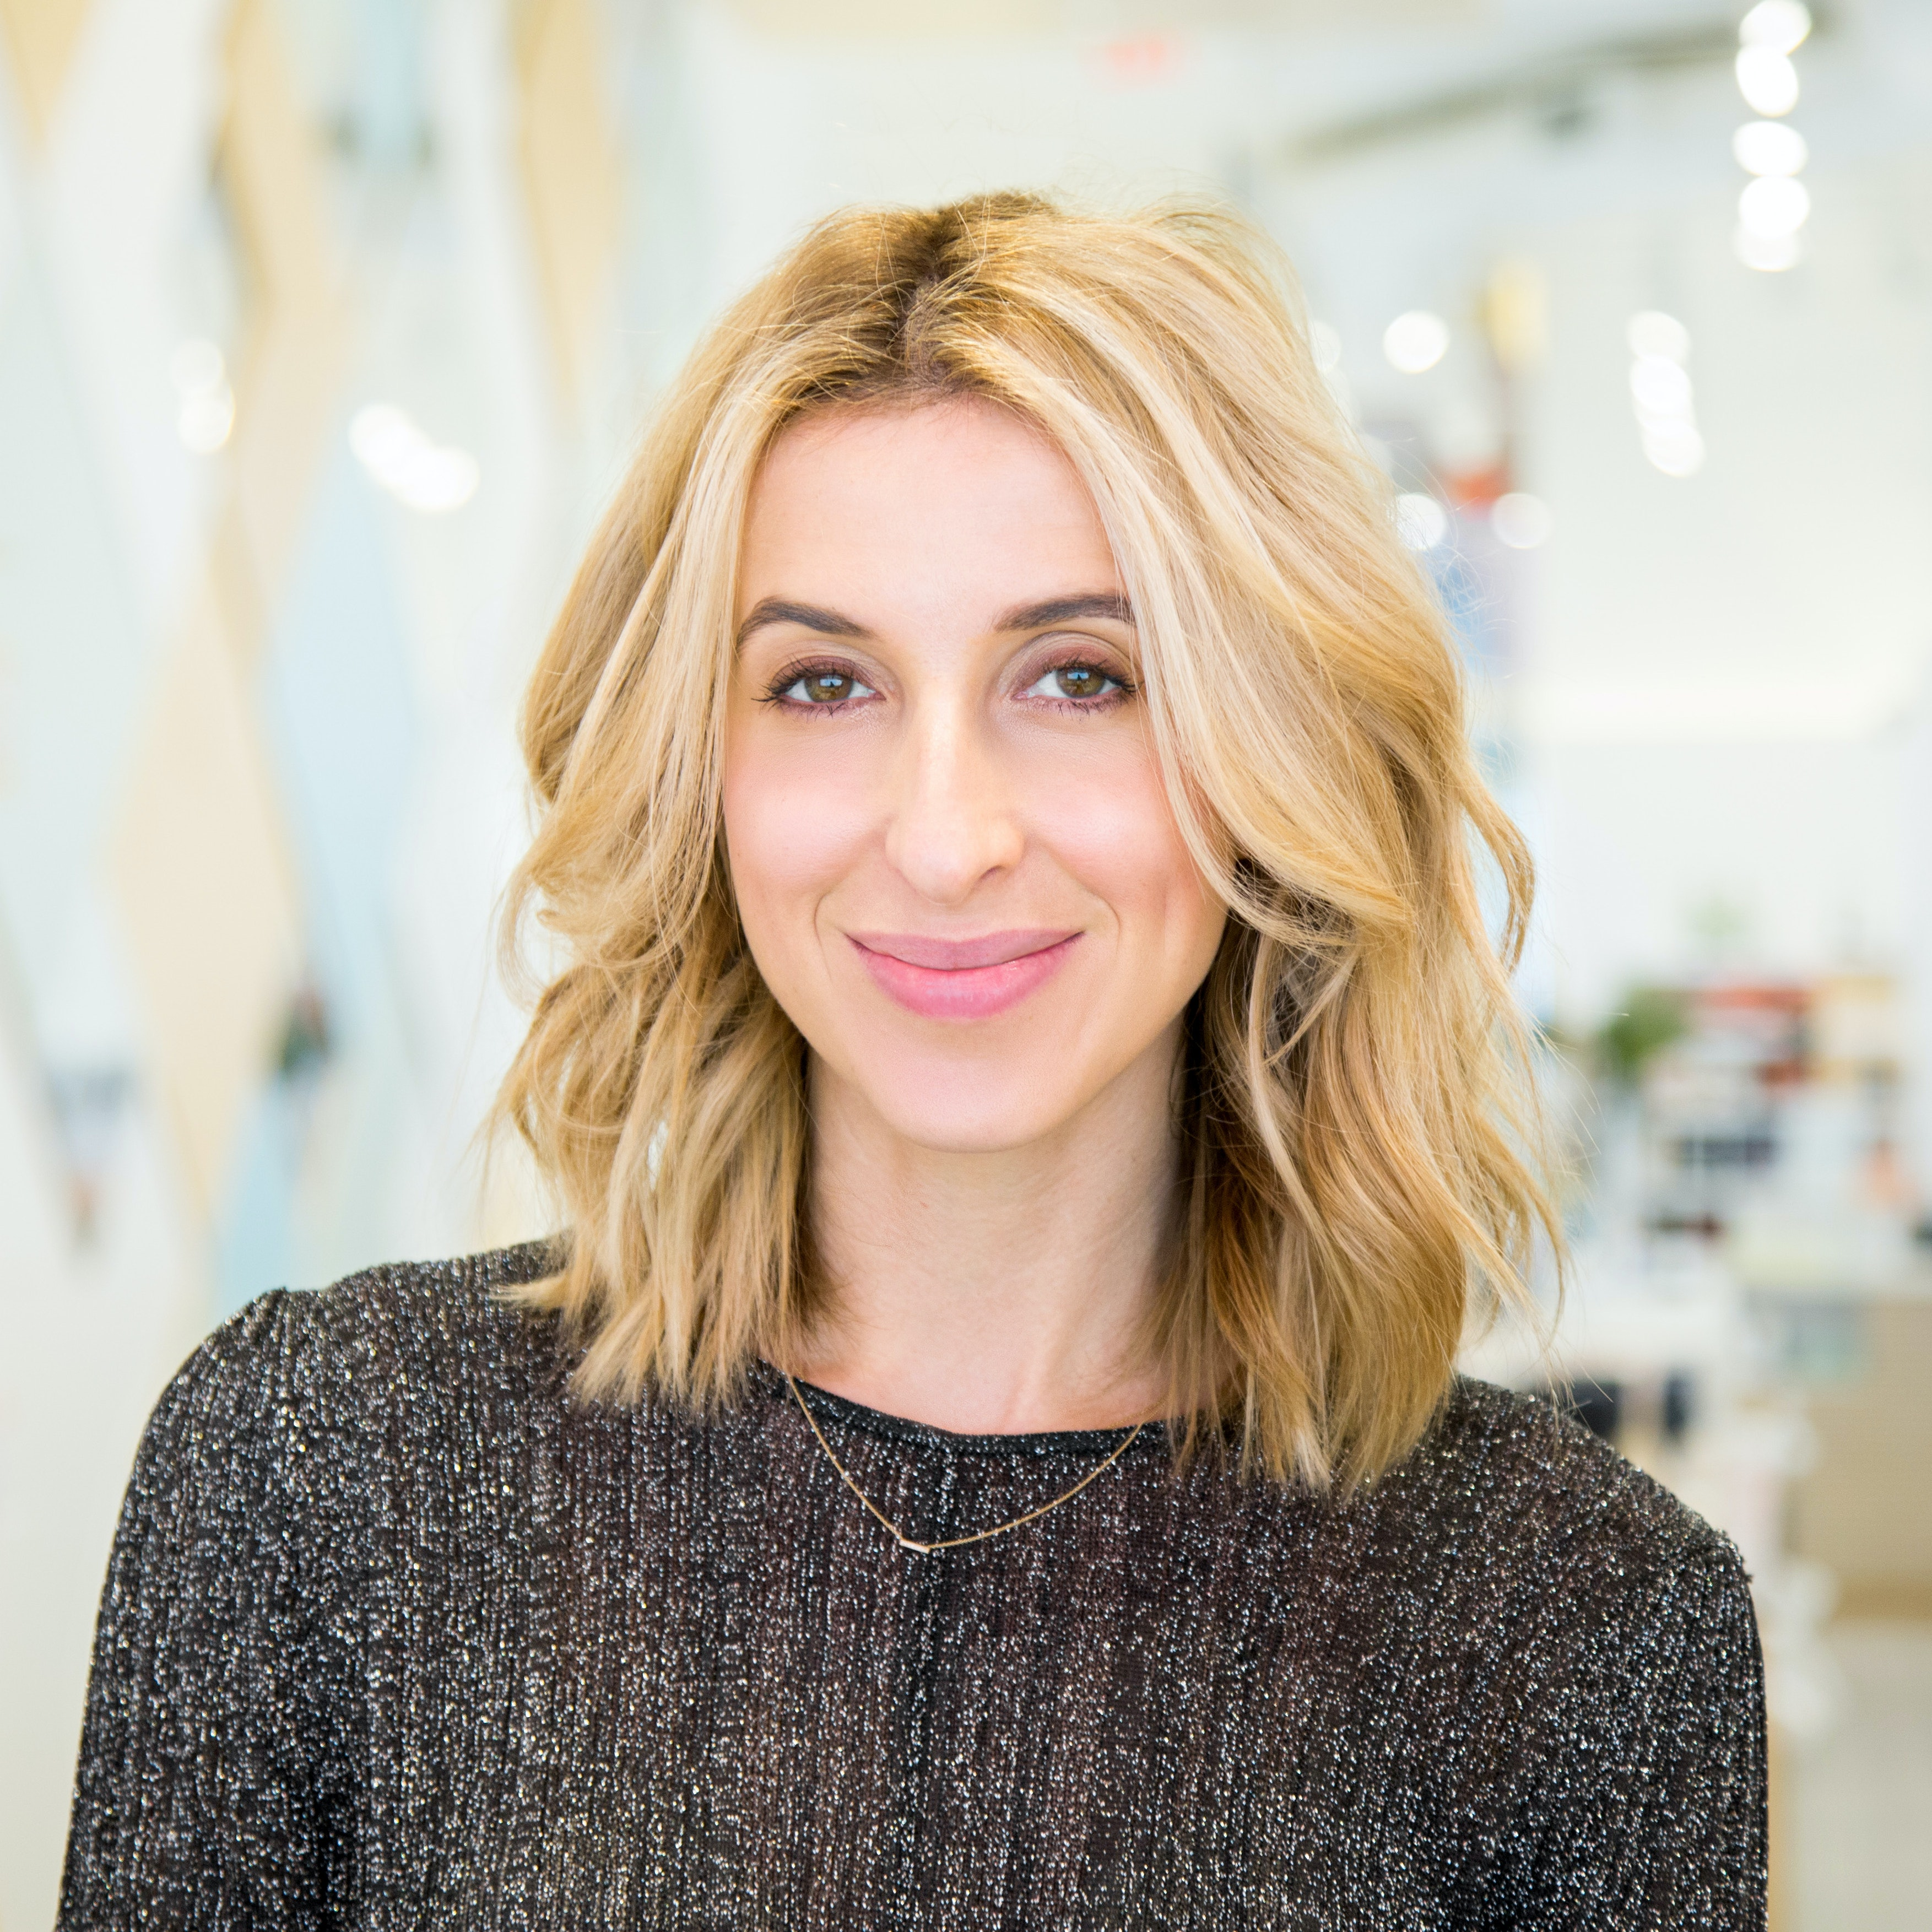 Why Birchbox Co-Founder Katia Beauchamp Doesn't Believe In Painted Fingernails